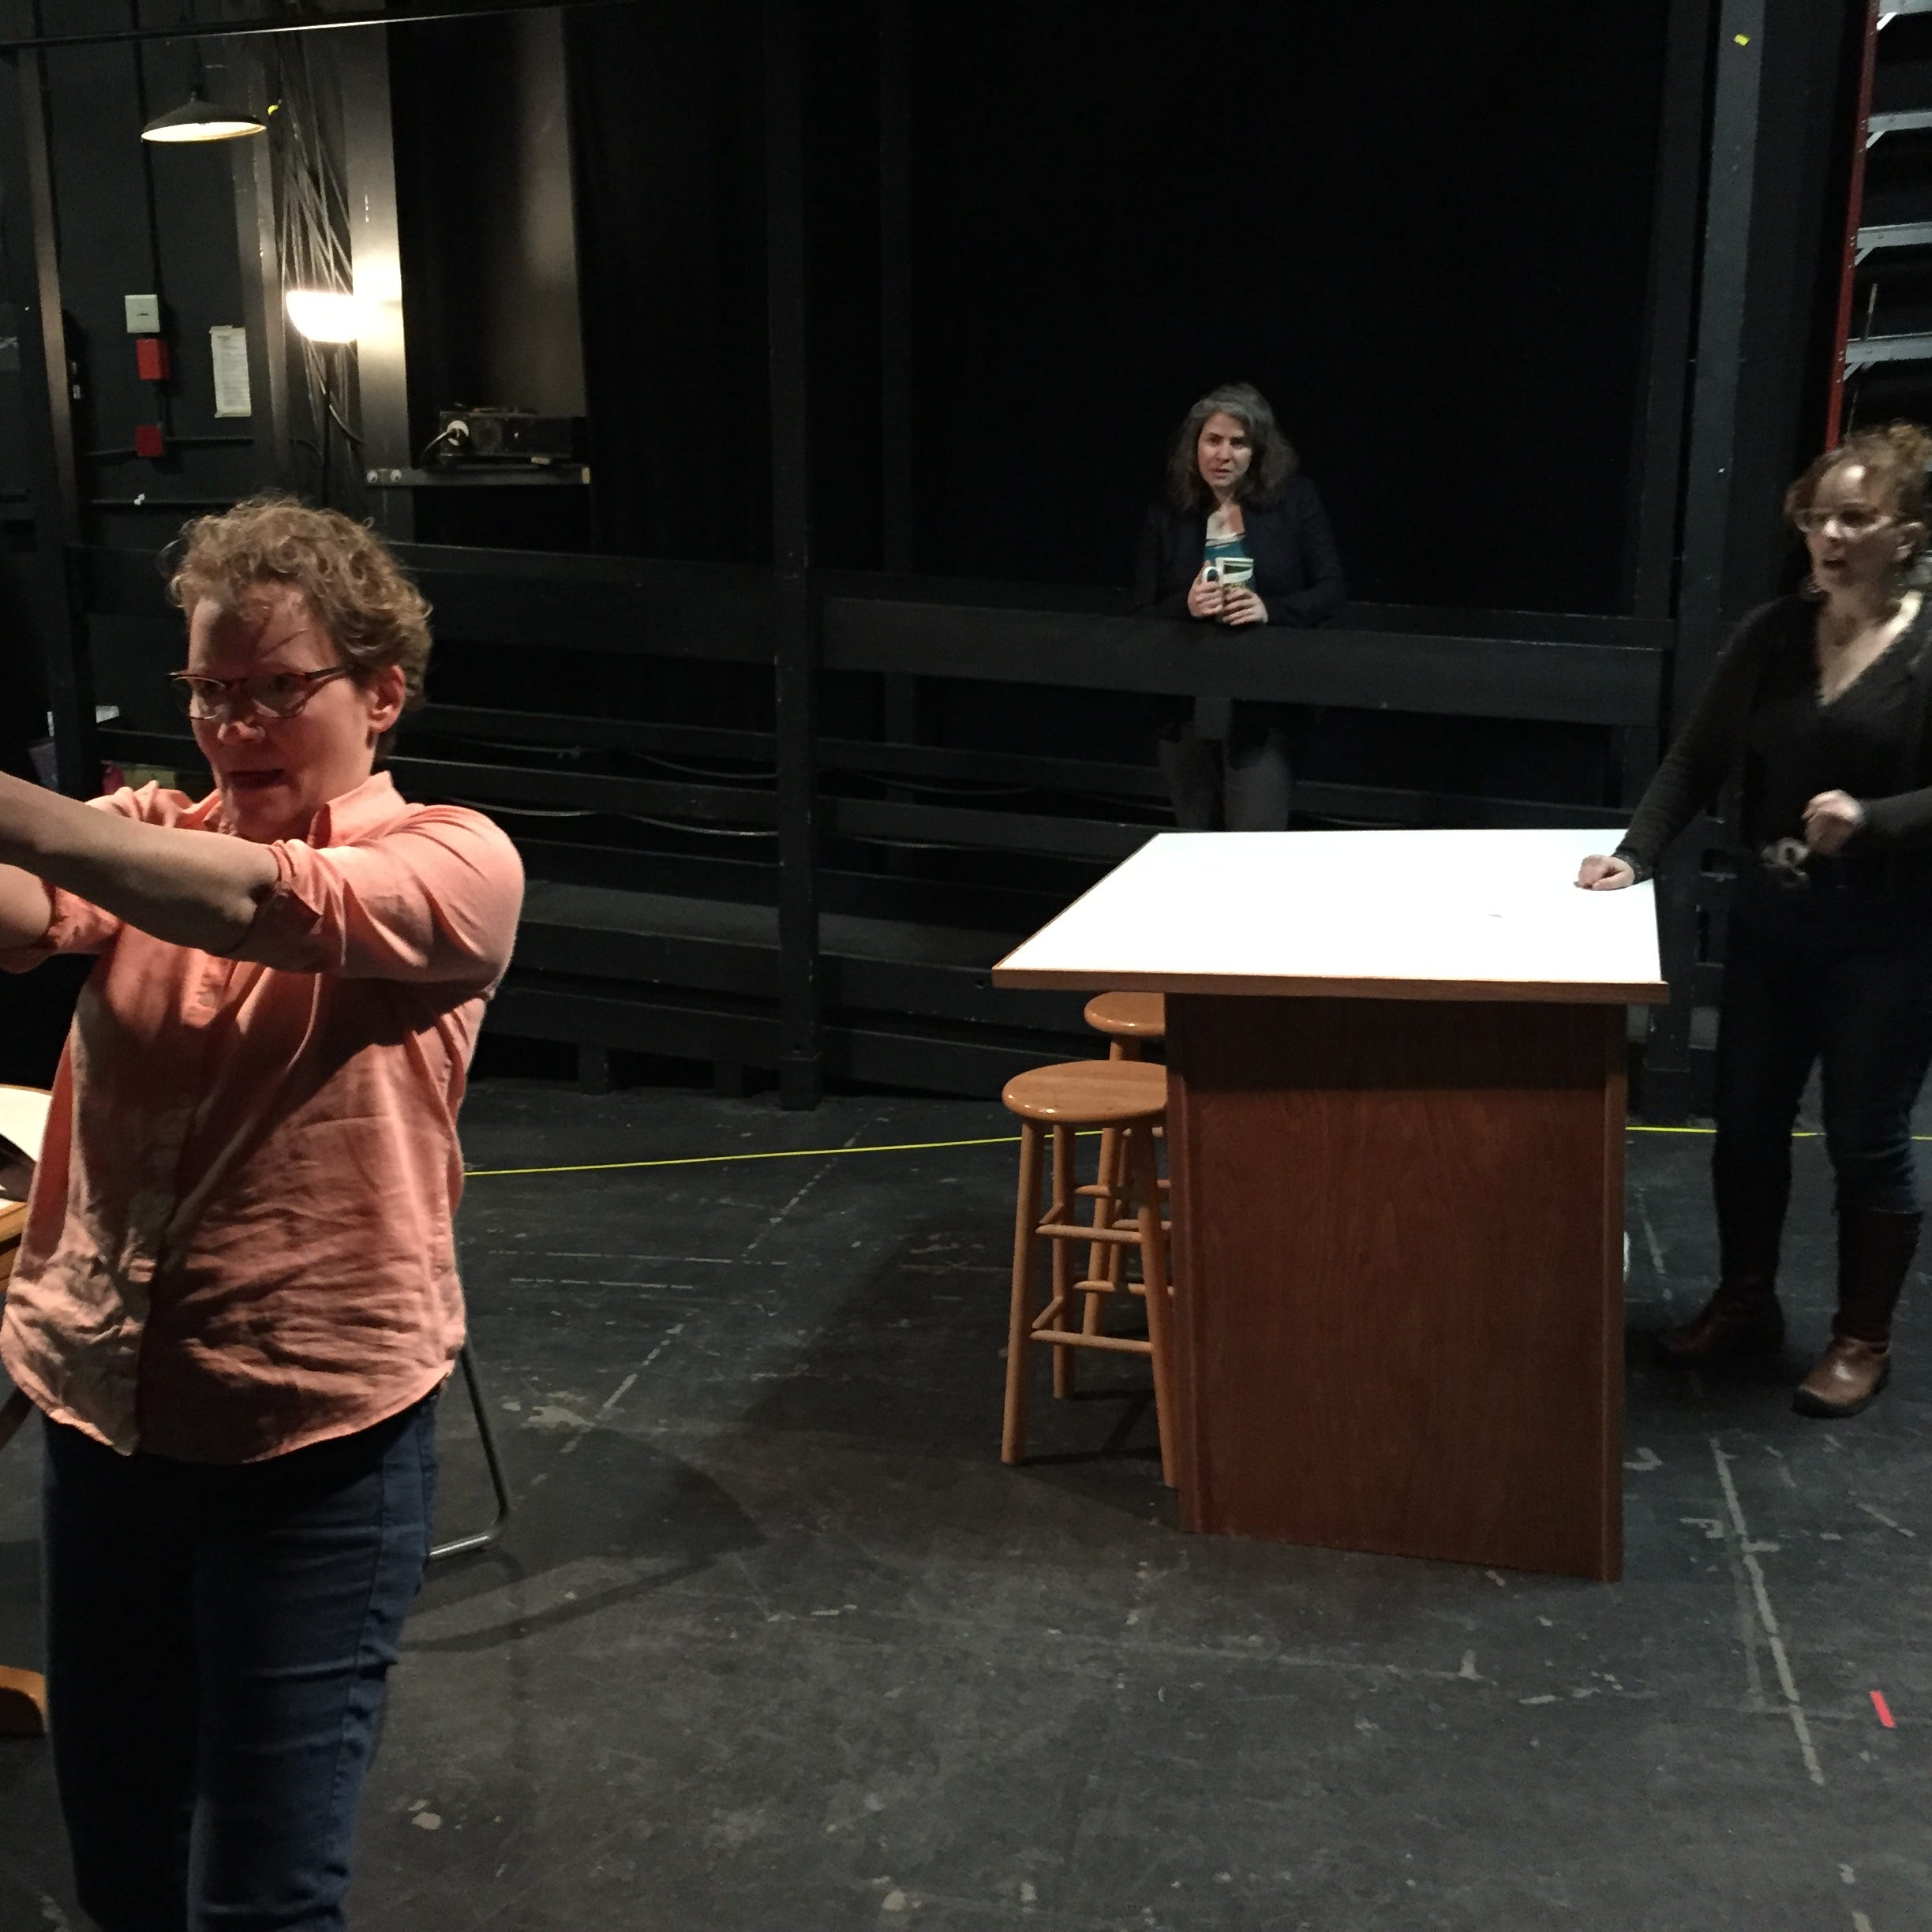 Burlington's theater incubator has to move by June, but it doesn't have a new home yet